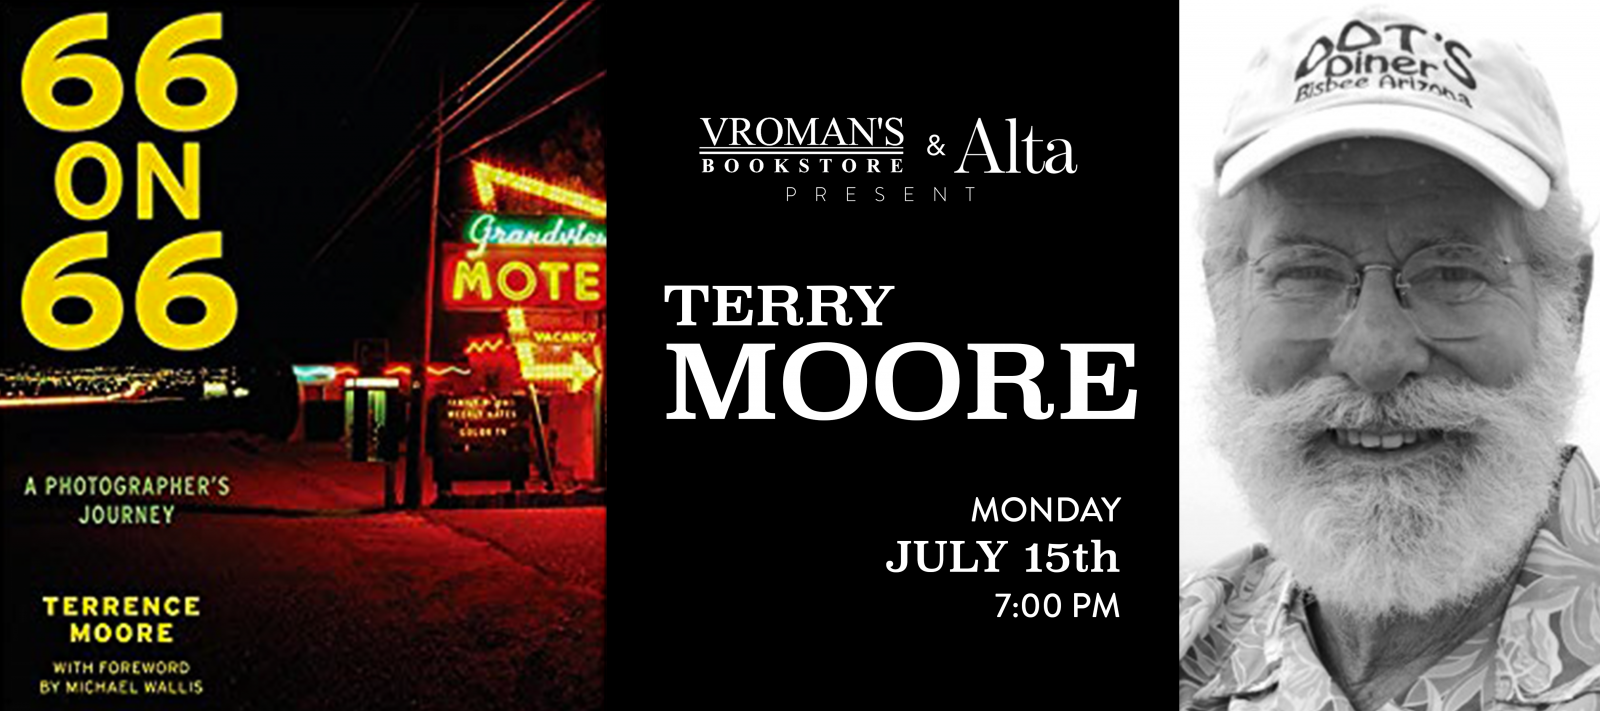 Terrence Moore book signing Monday July 15th at 7pm